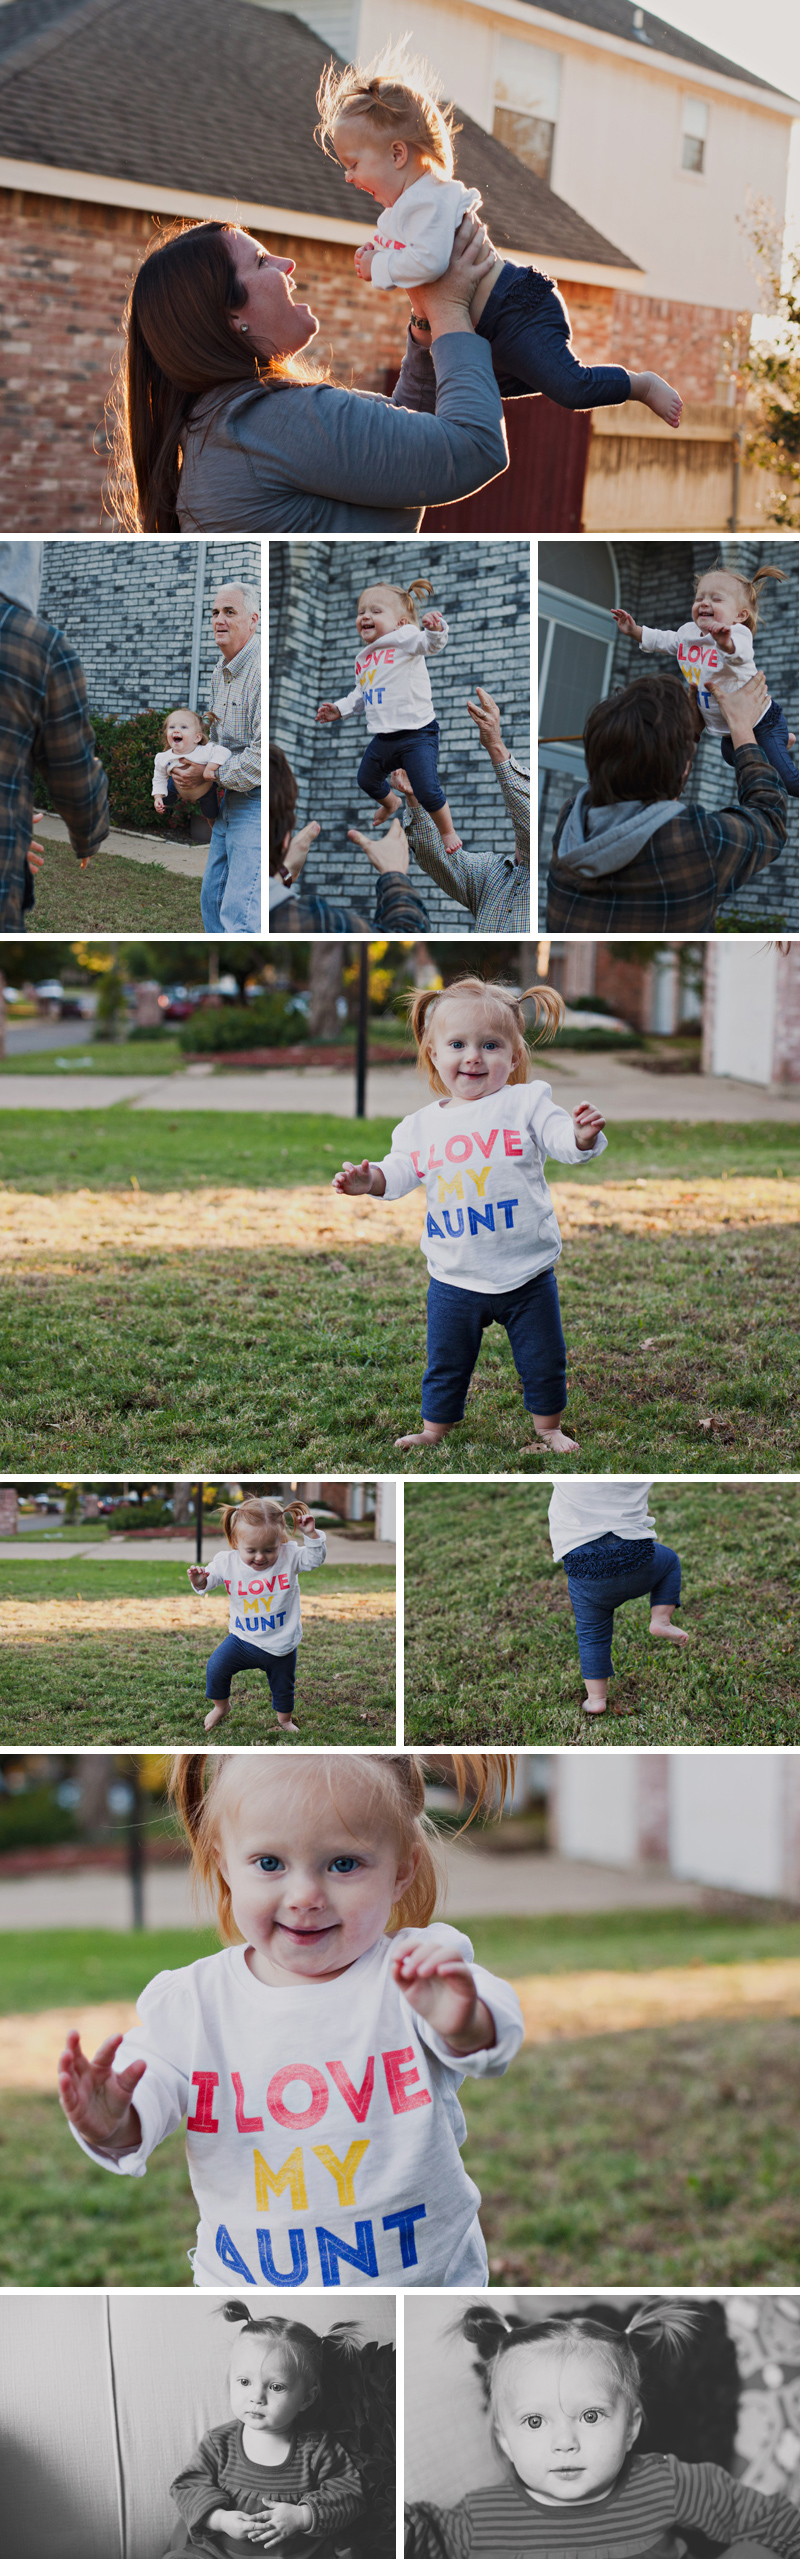 Dallas-Baby-Photographerc005